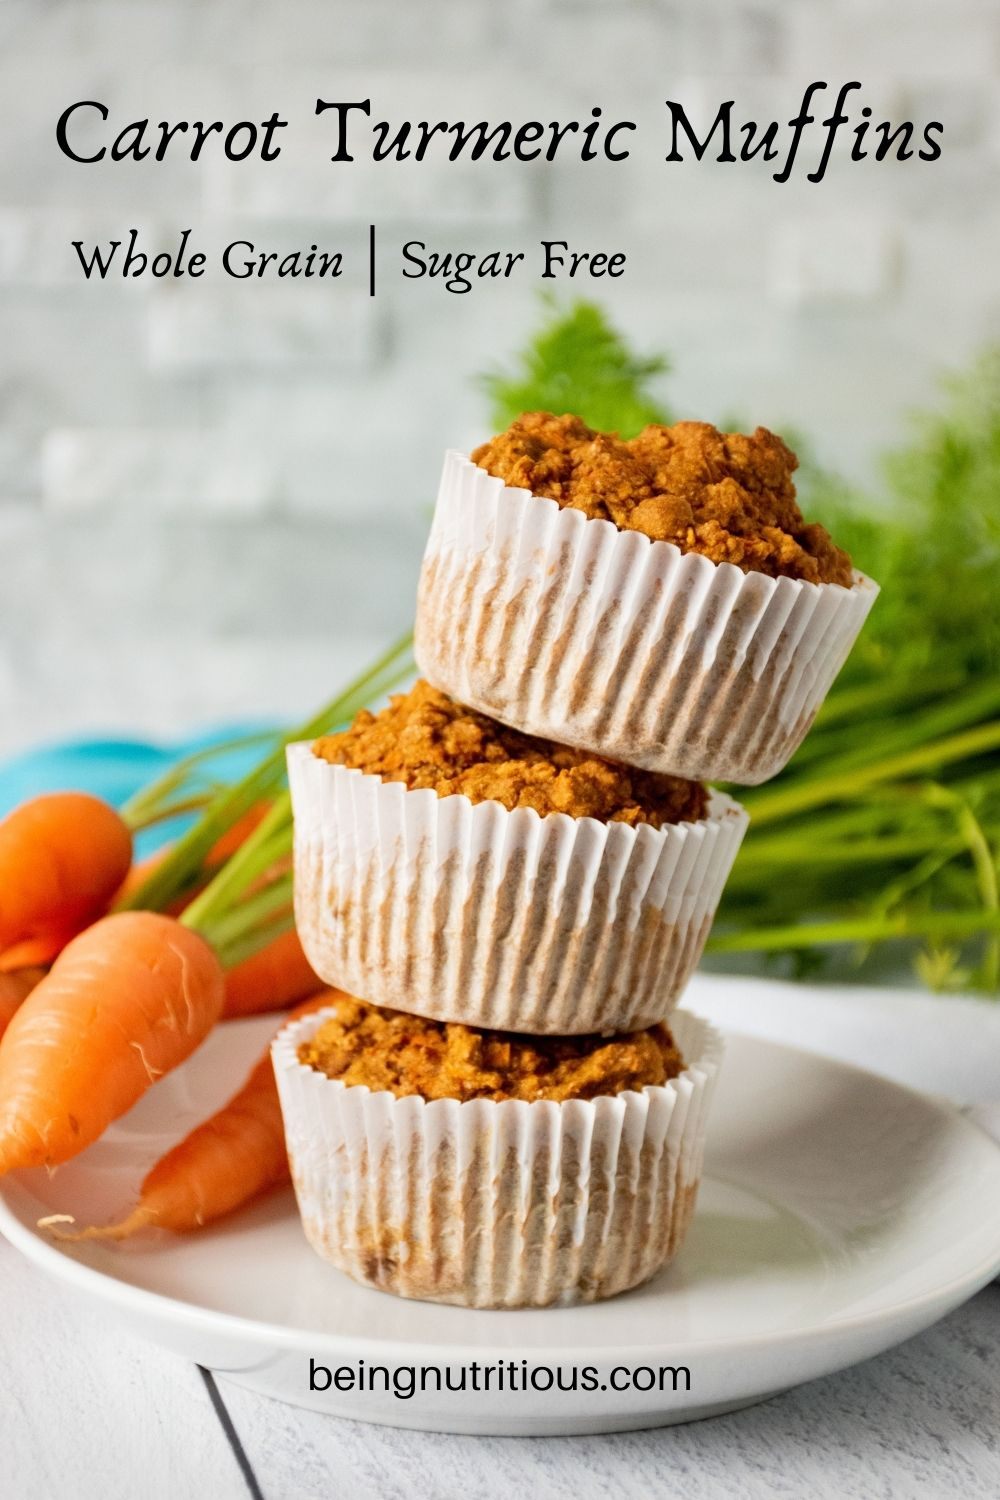 Stack of 3 muffins on a plate with fresh carrots in the background. Text overlay: Carrot Turmeric Muffins; whole grain, sugar free.